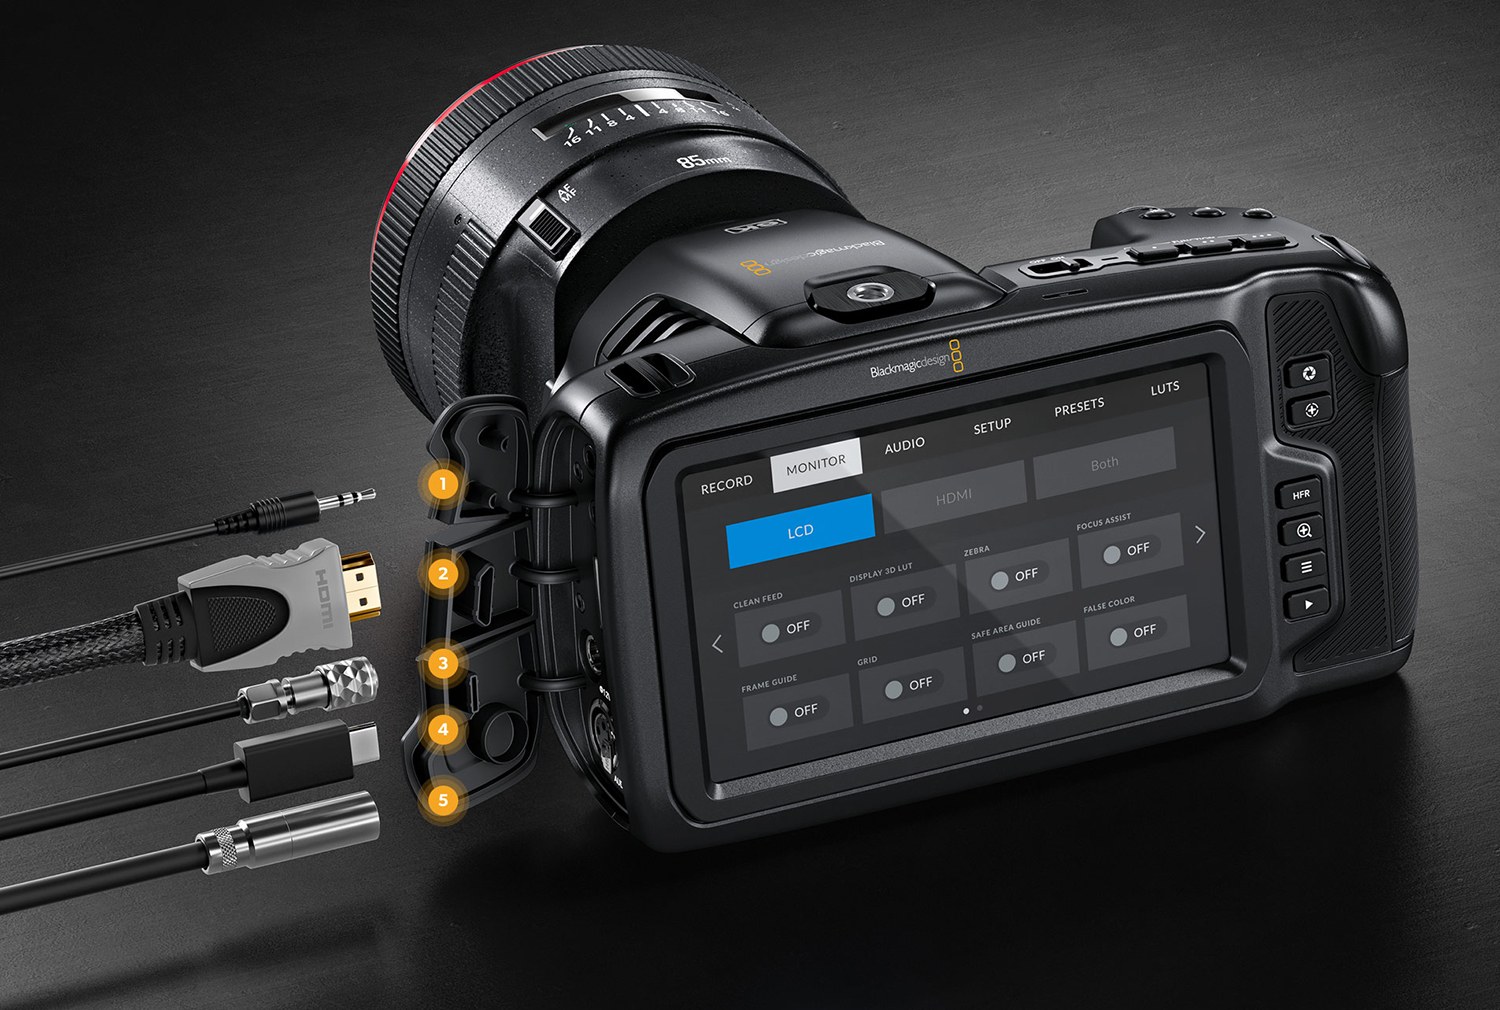 Decouvrez La Nouvelle Blackmagic Design Pocket Cinema Camera 6k